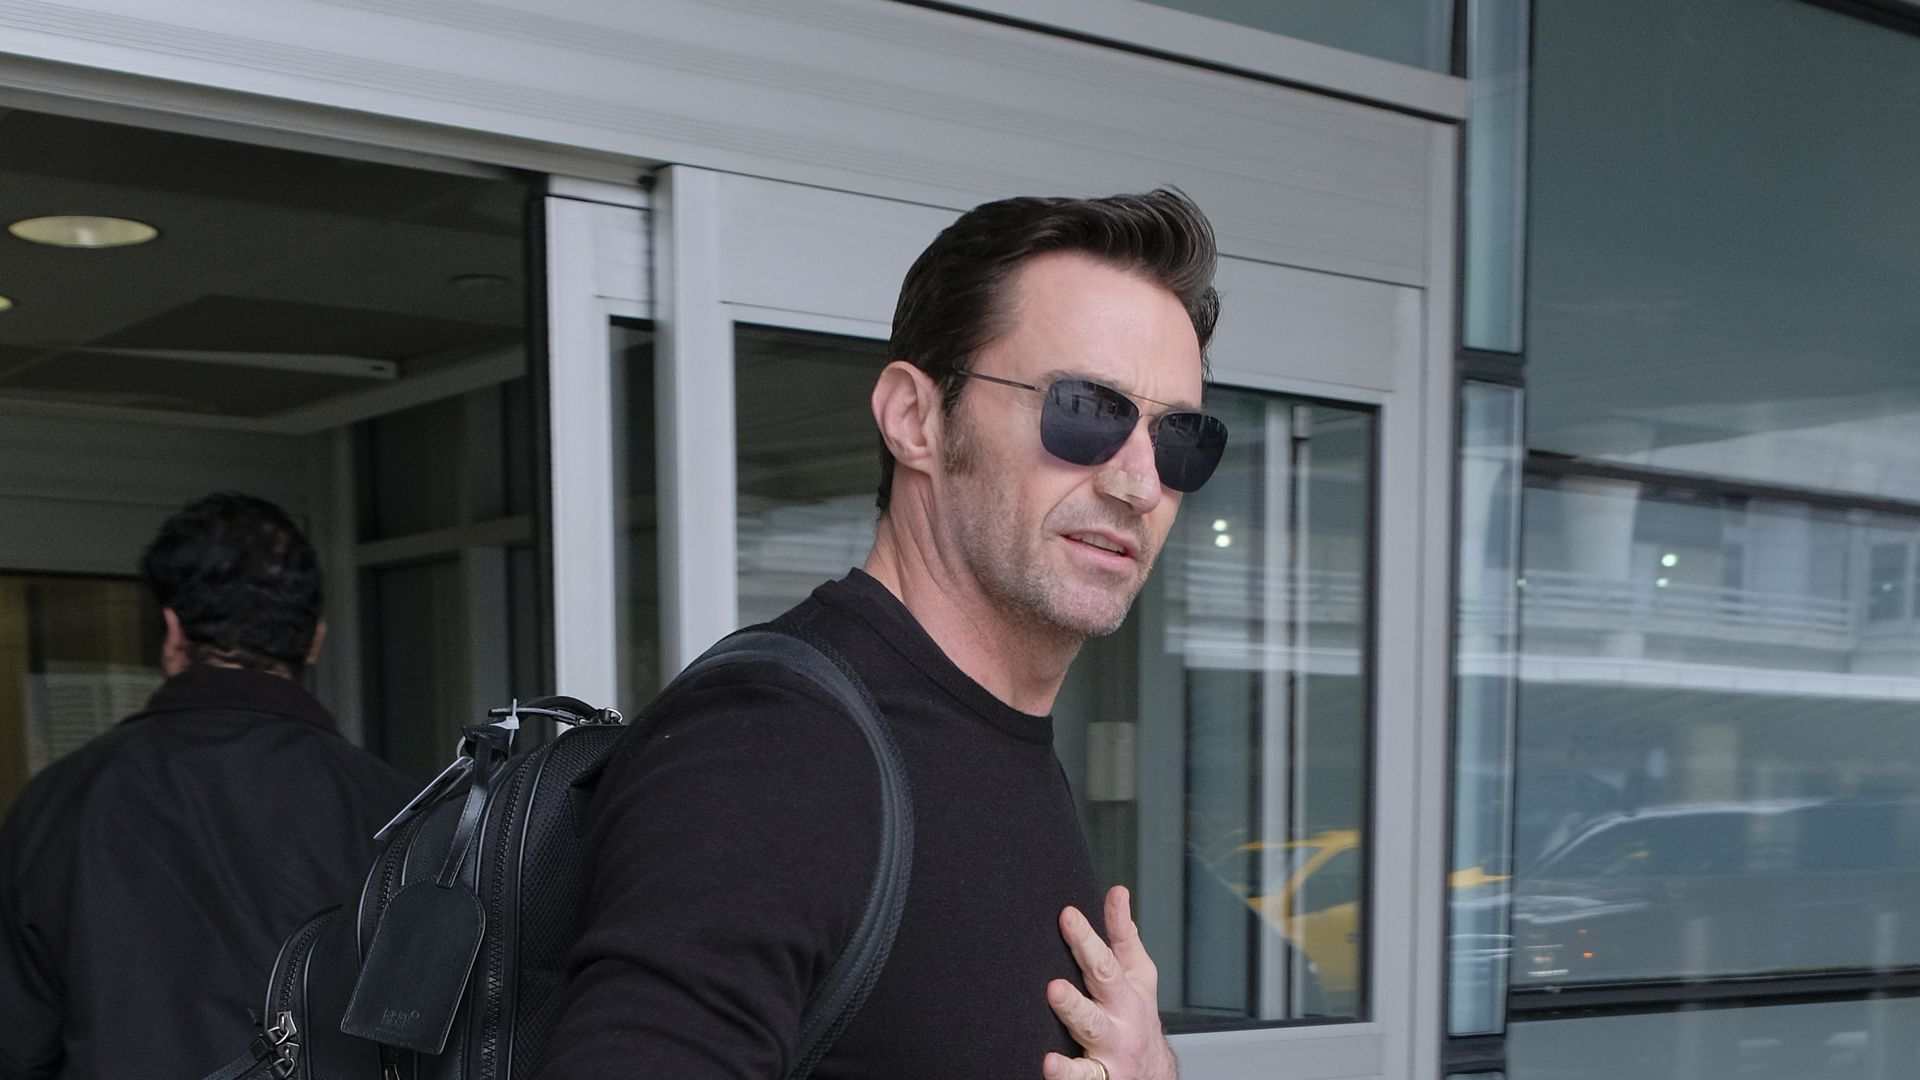 x men star hugh jackman das sagt er ber seinen hautkrebs. Black Bedroom Furniture Sets. Home Design Ideas